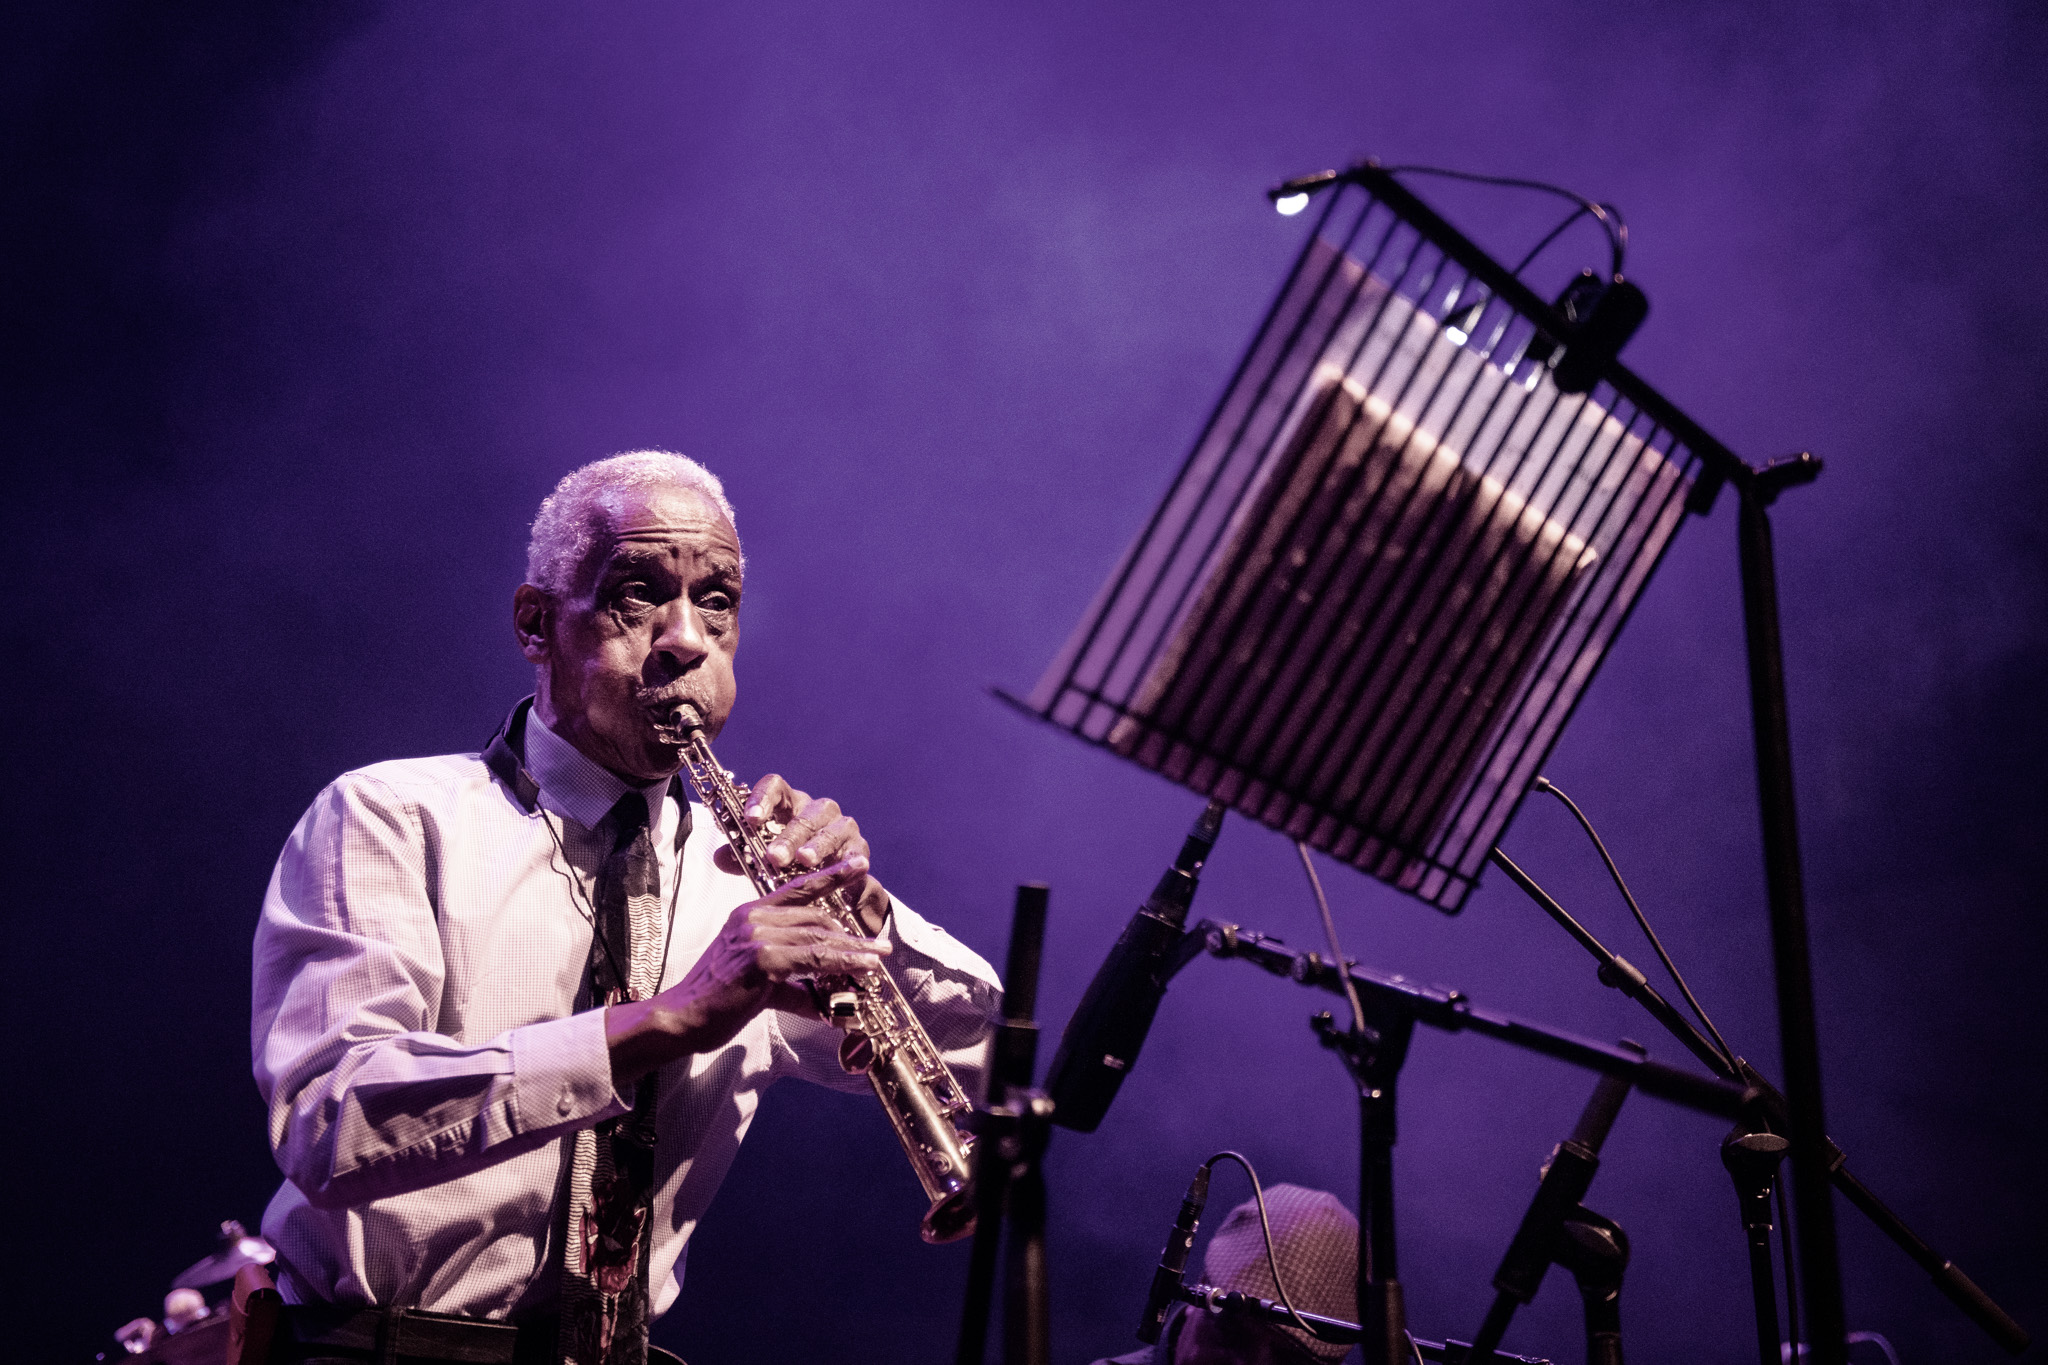 Listen to Art Ensemble of Chicago's full performance at LGW18, curated by Moor Mother